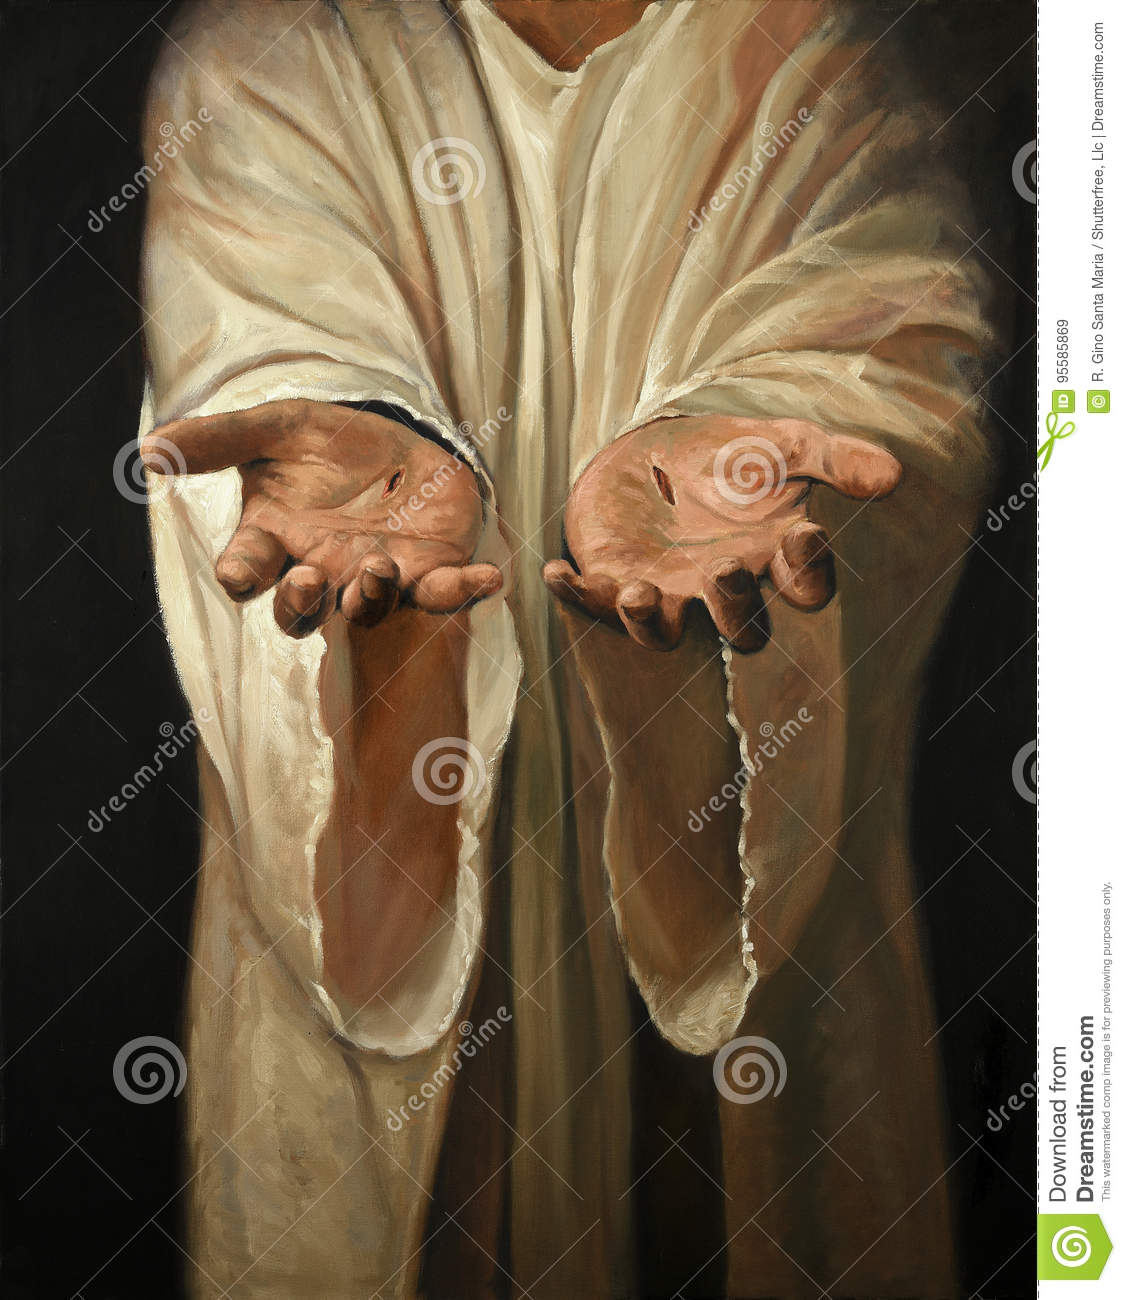 Hands of Jesus Painting